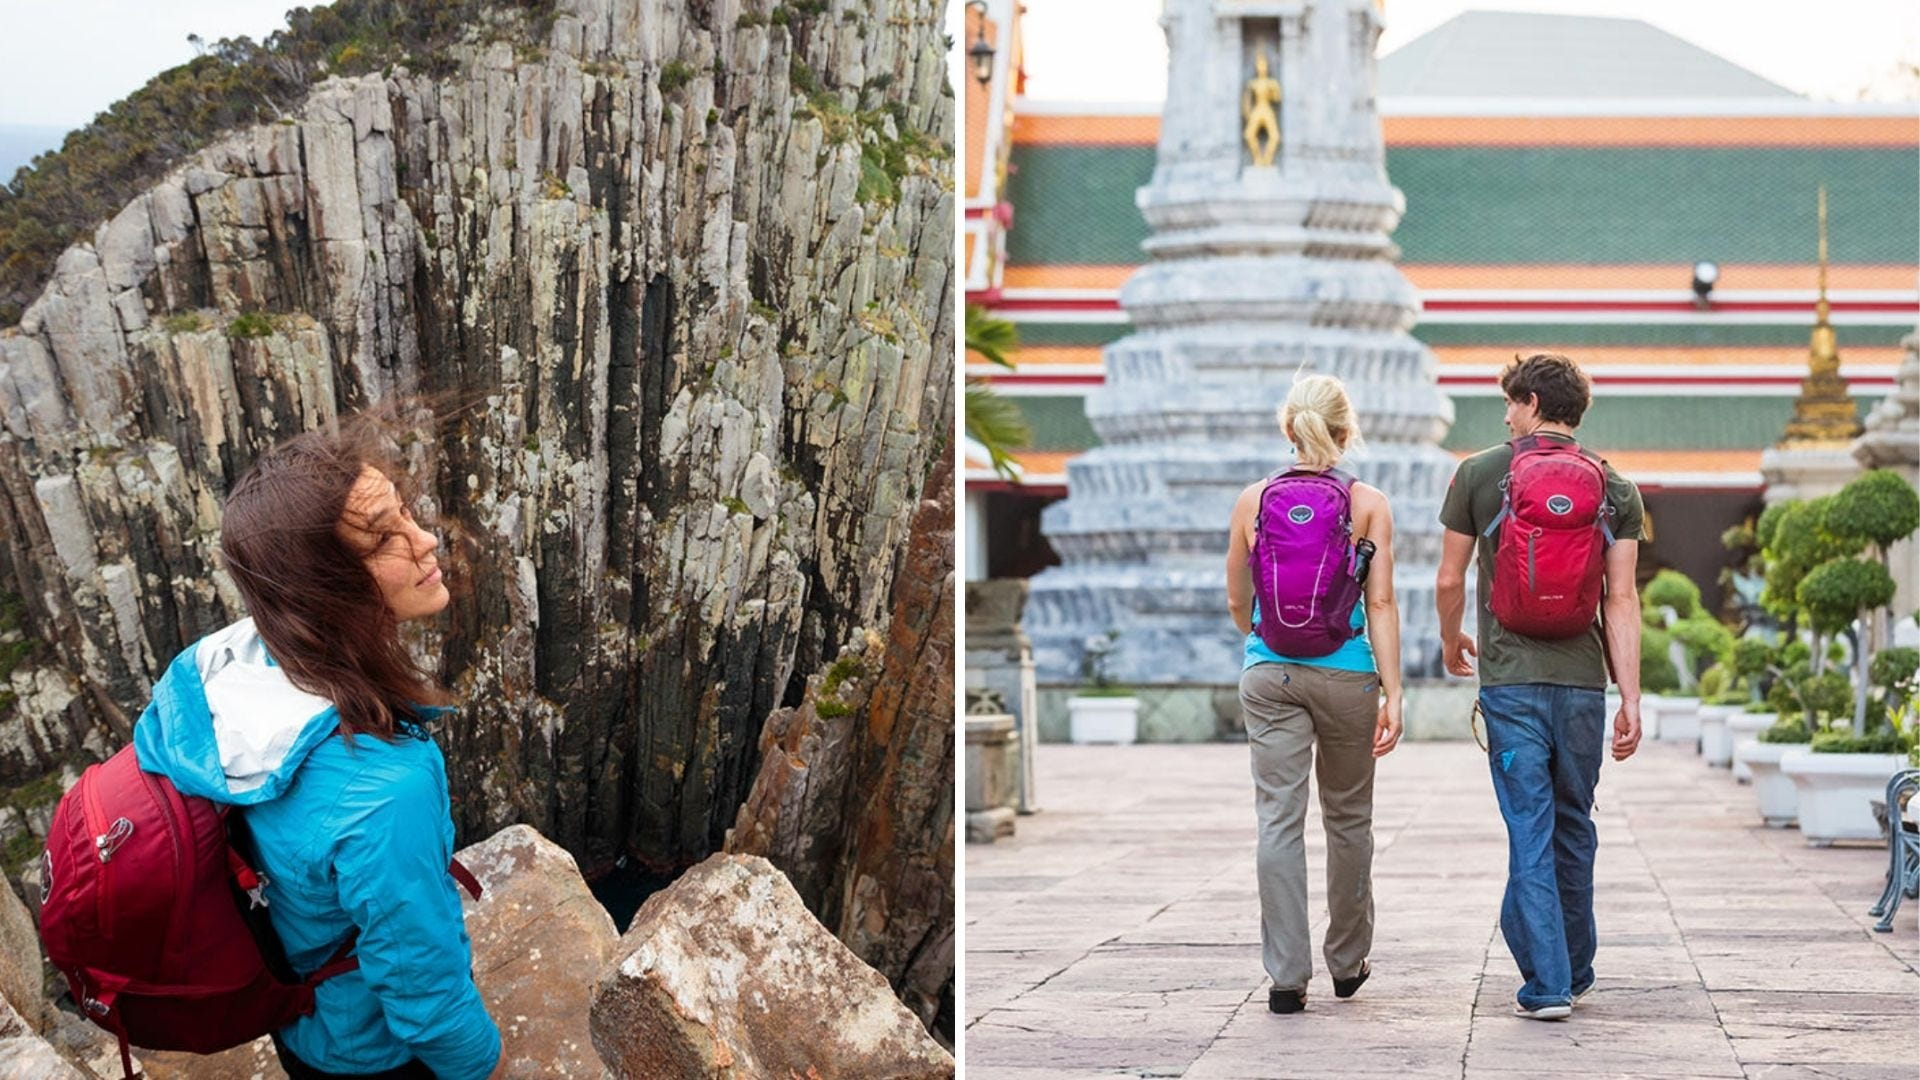 A girl looks out at mountains and two people walk in Asia with backpacks on